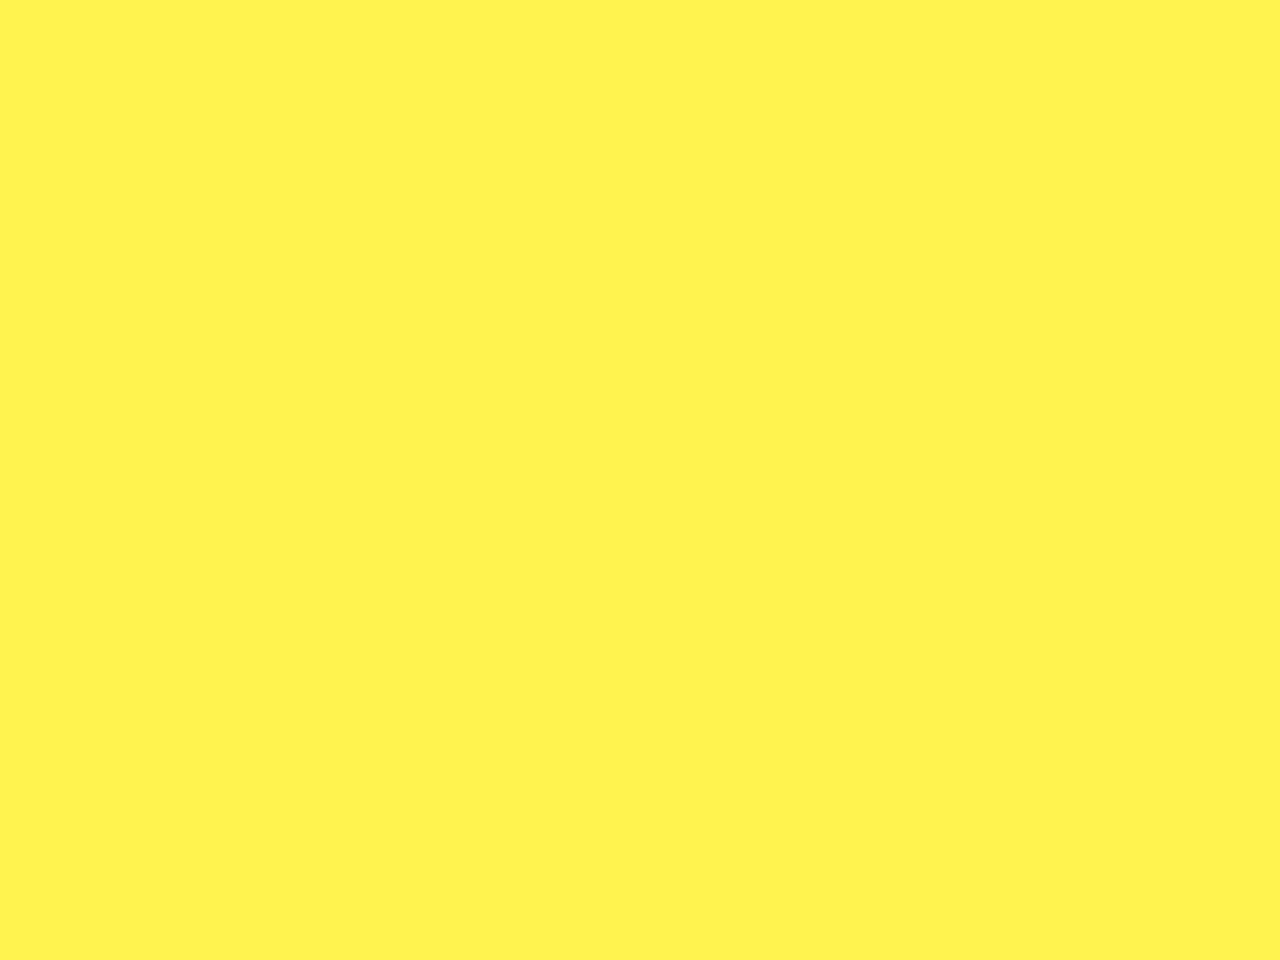 1280x960 Lemon Yellow Solid Color Background